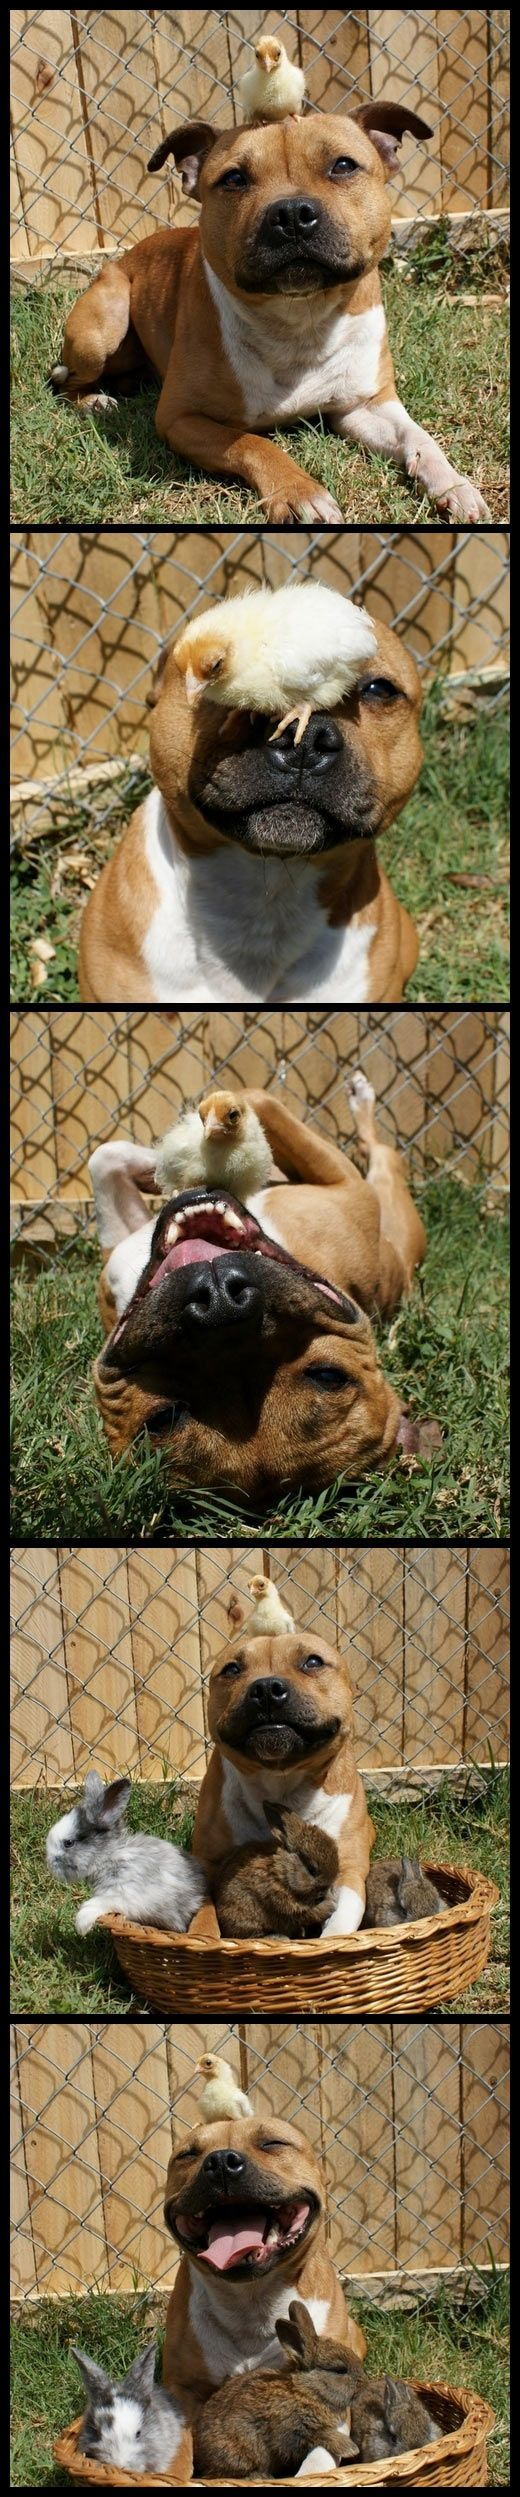 The perfect example of a vicious pit bull. Ha!